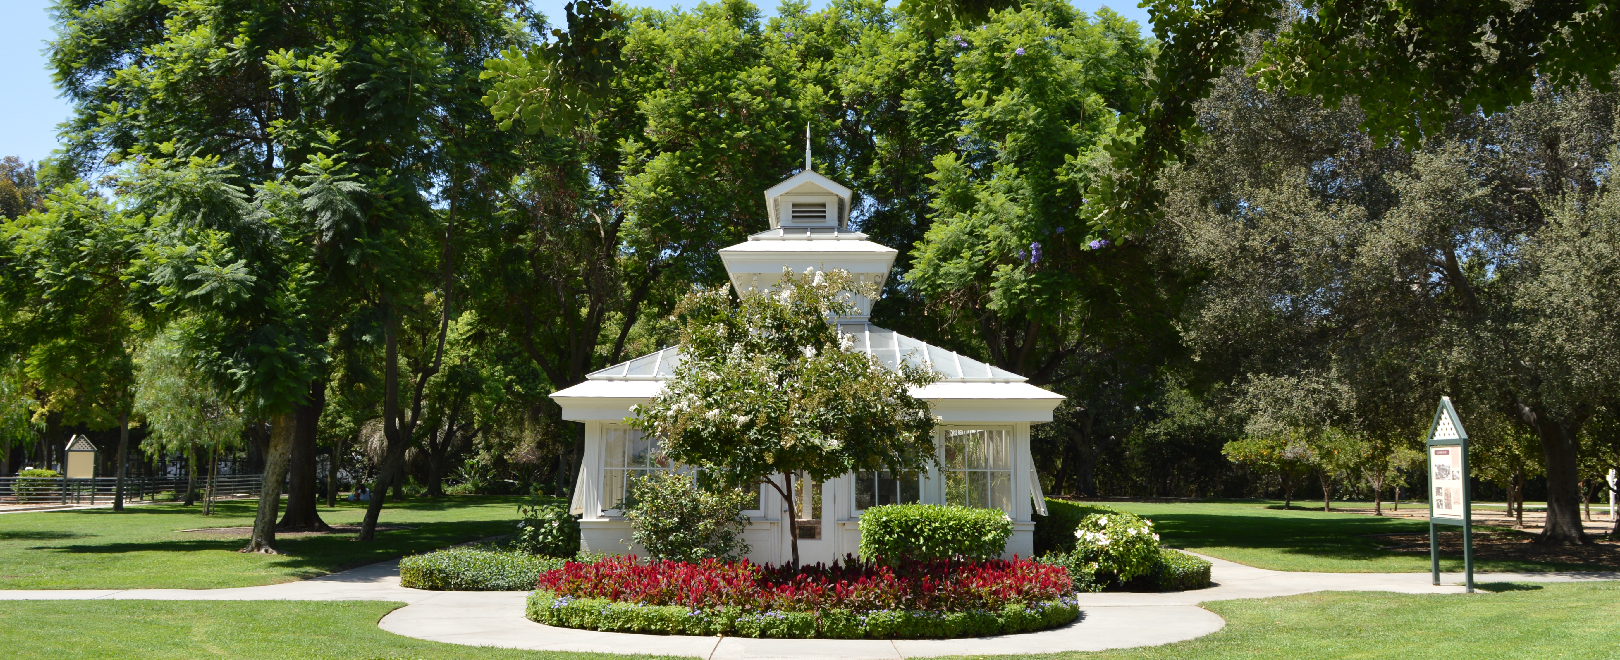 Santa fe springs ca heritage park - The garden place at heritage park ...